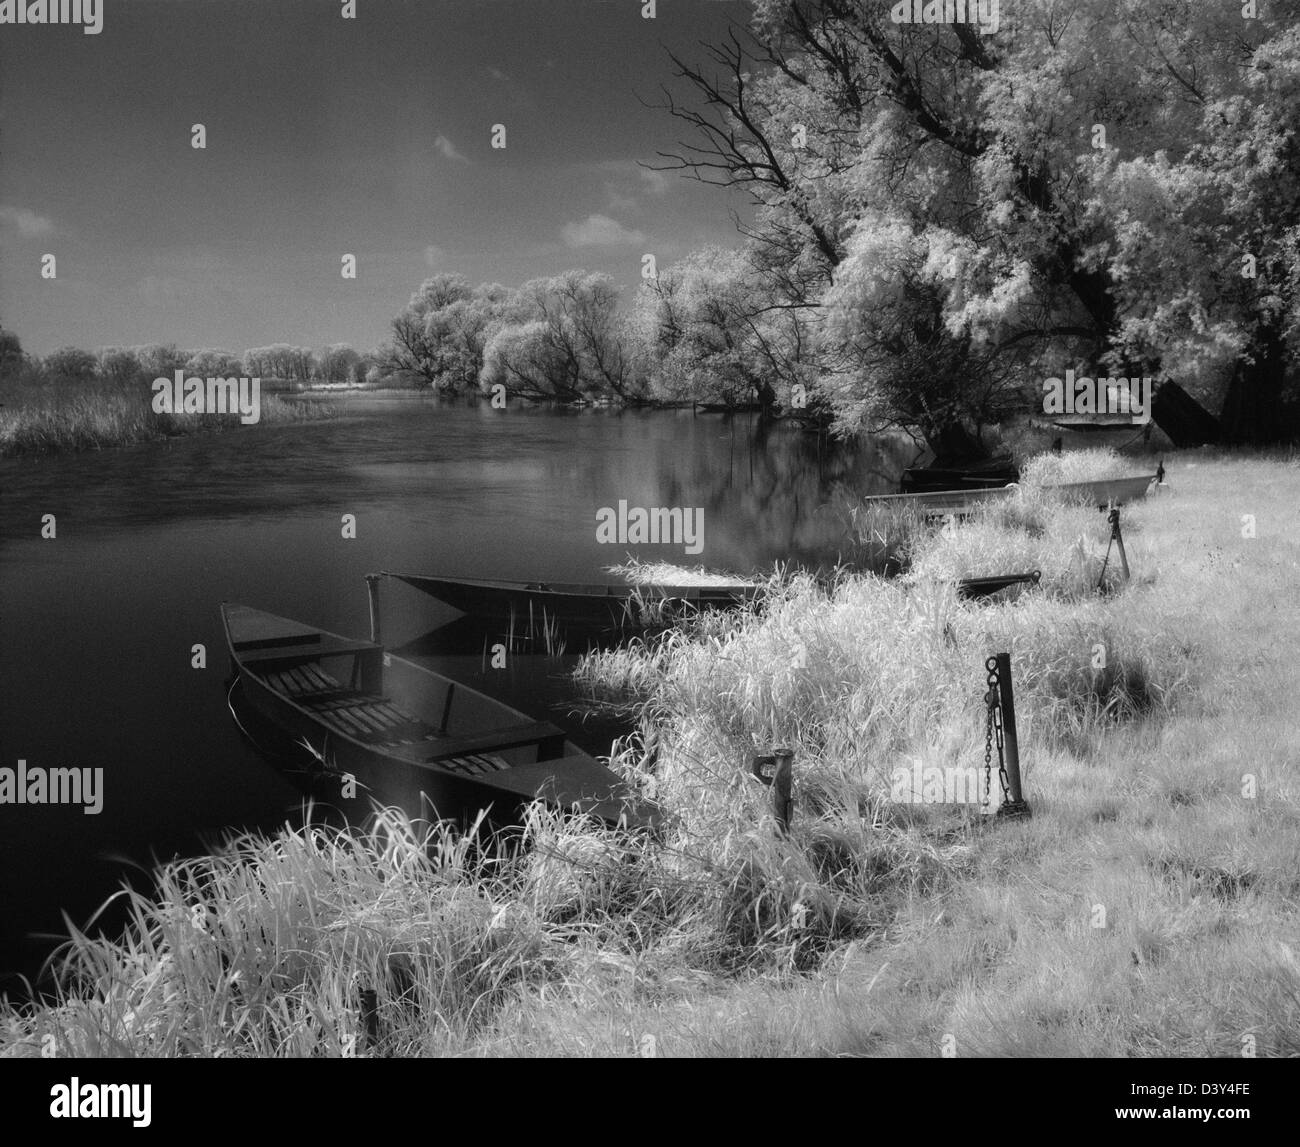 Jerchel, Germany, black and white infrared photograph: Havel landscape - Stock Image